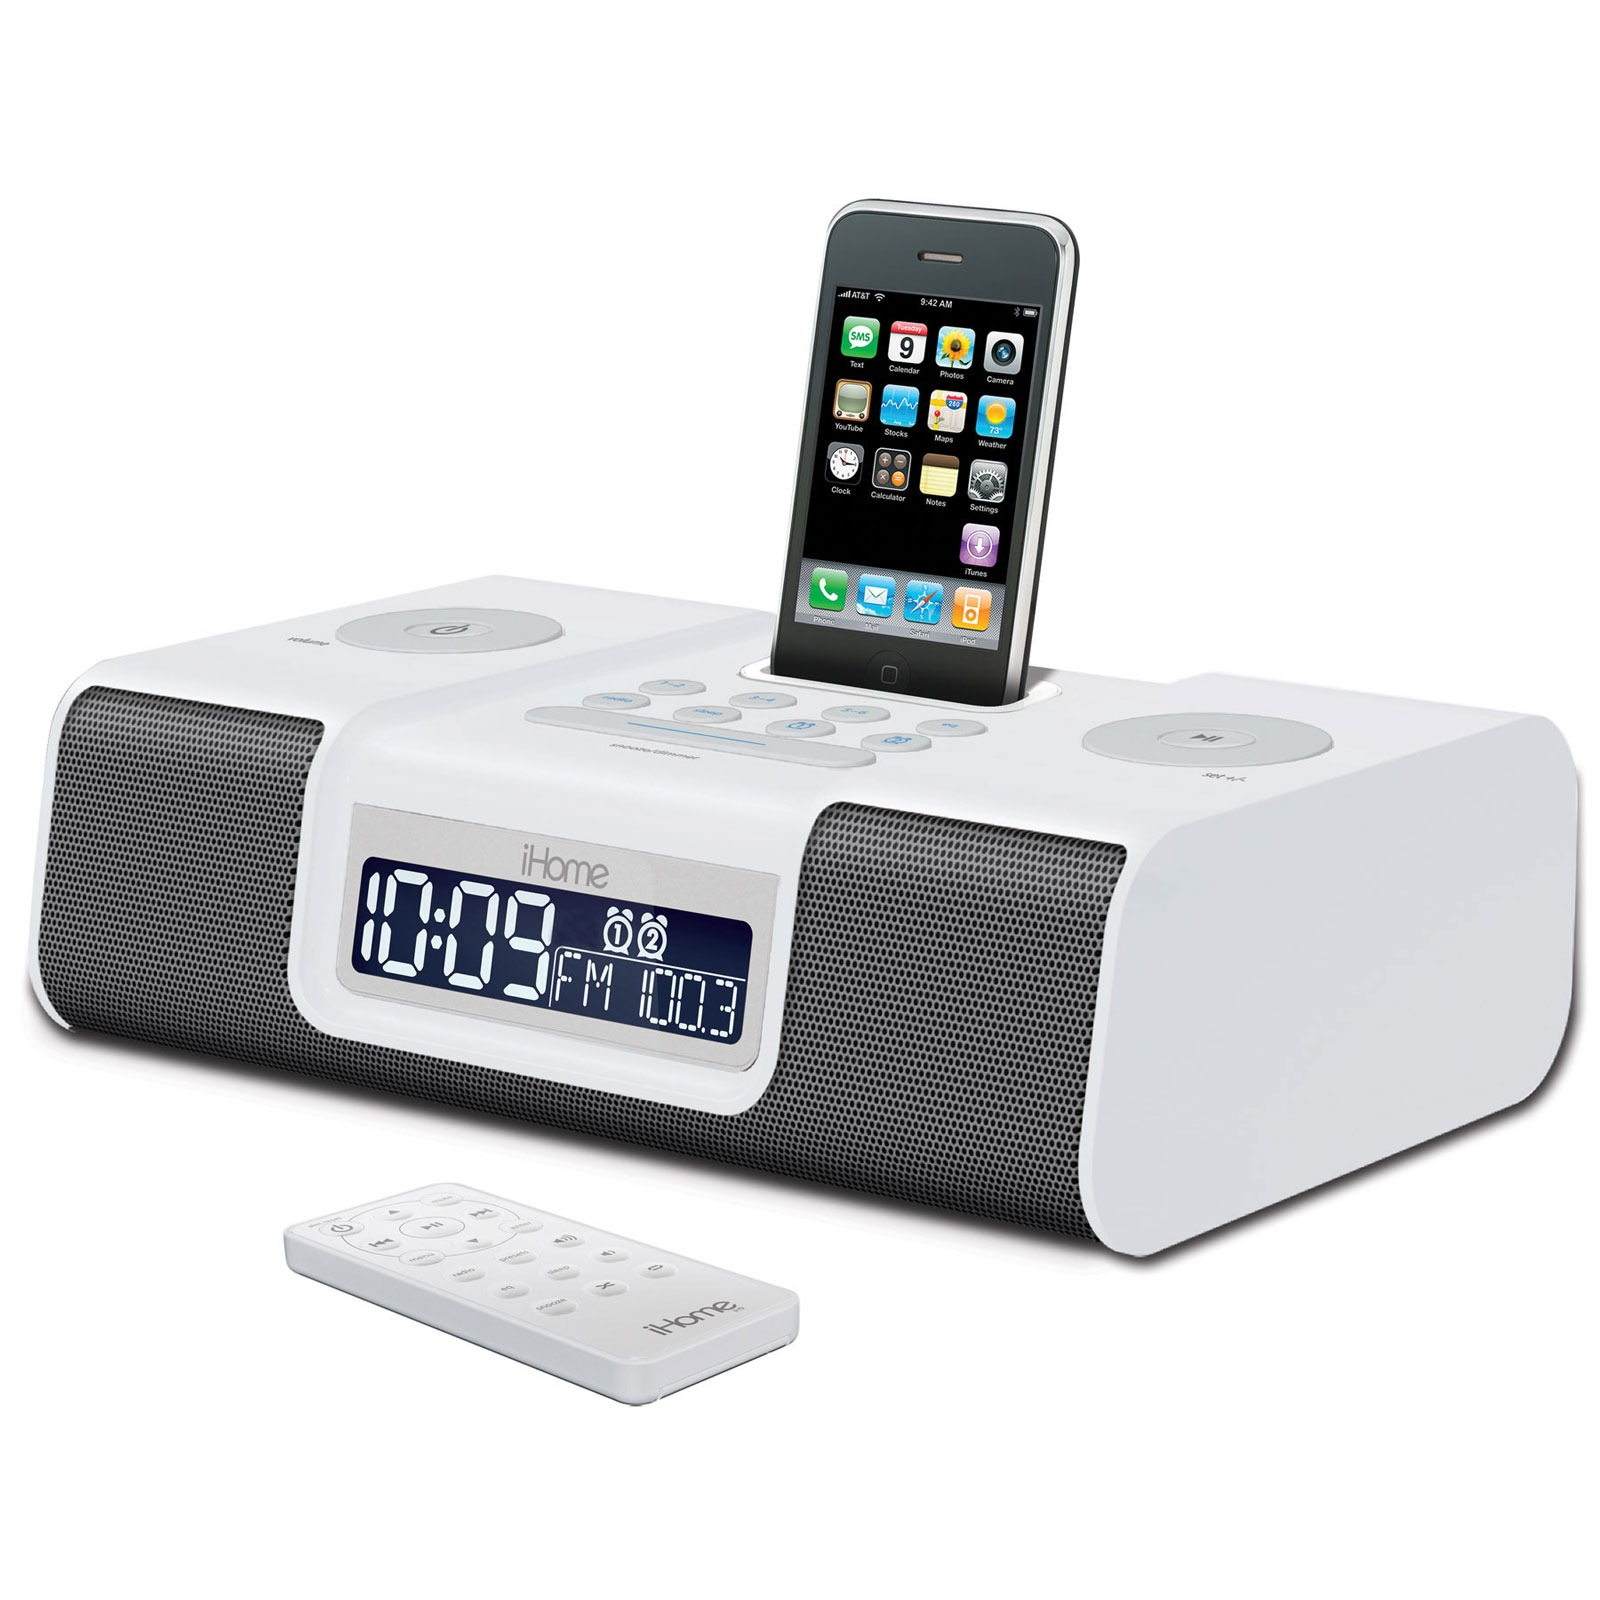 ihome ip9 dock enceinte bluetooth ihome sur. Black Bedroom Furniture Sets. Home Design Ideas